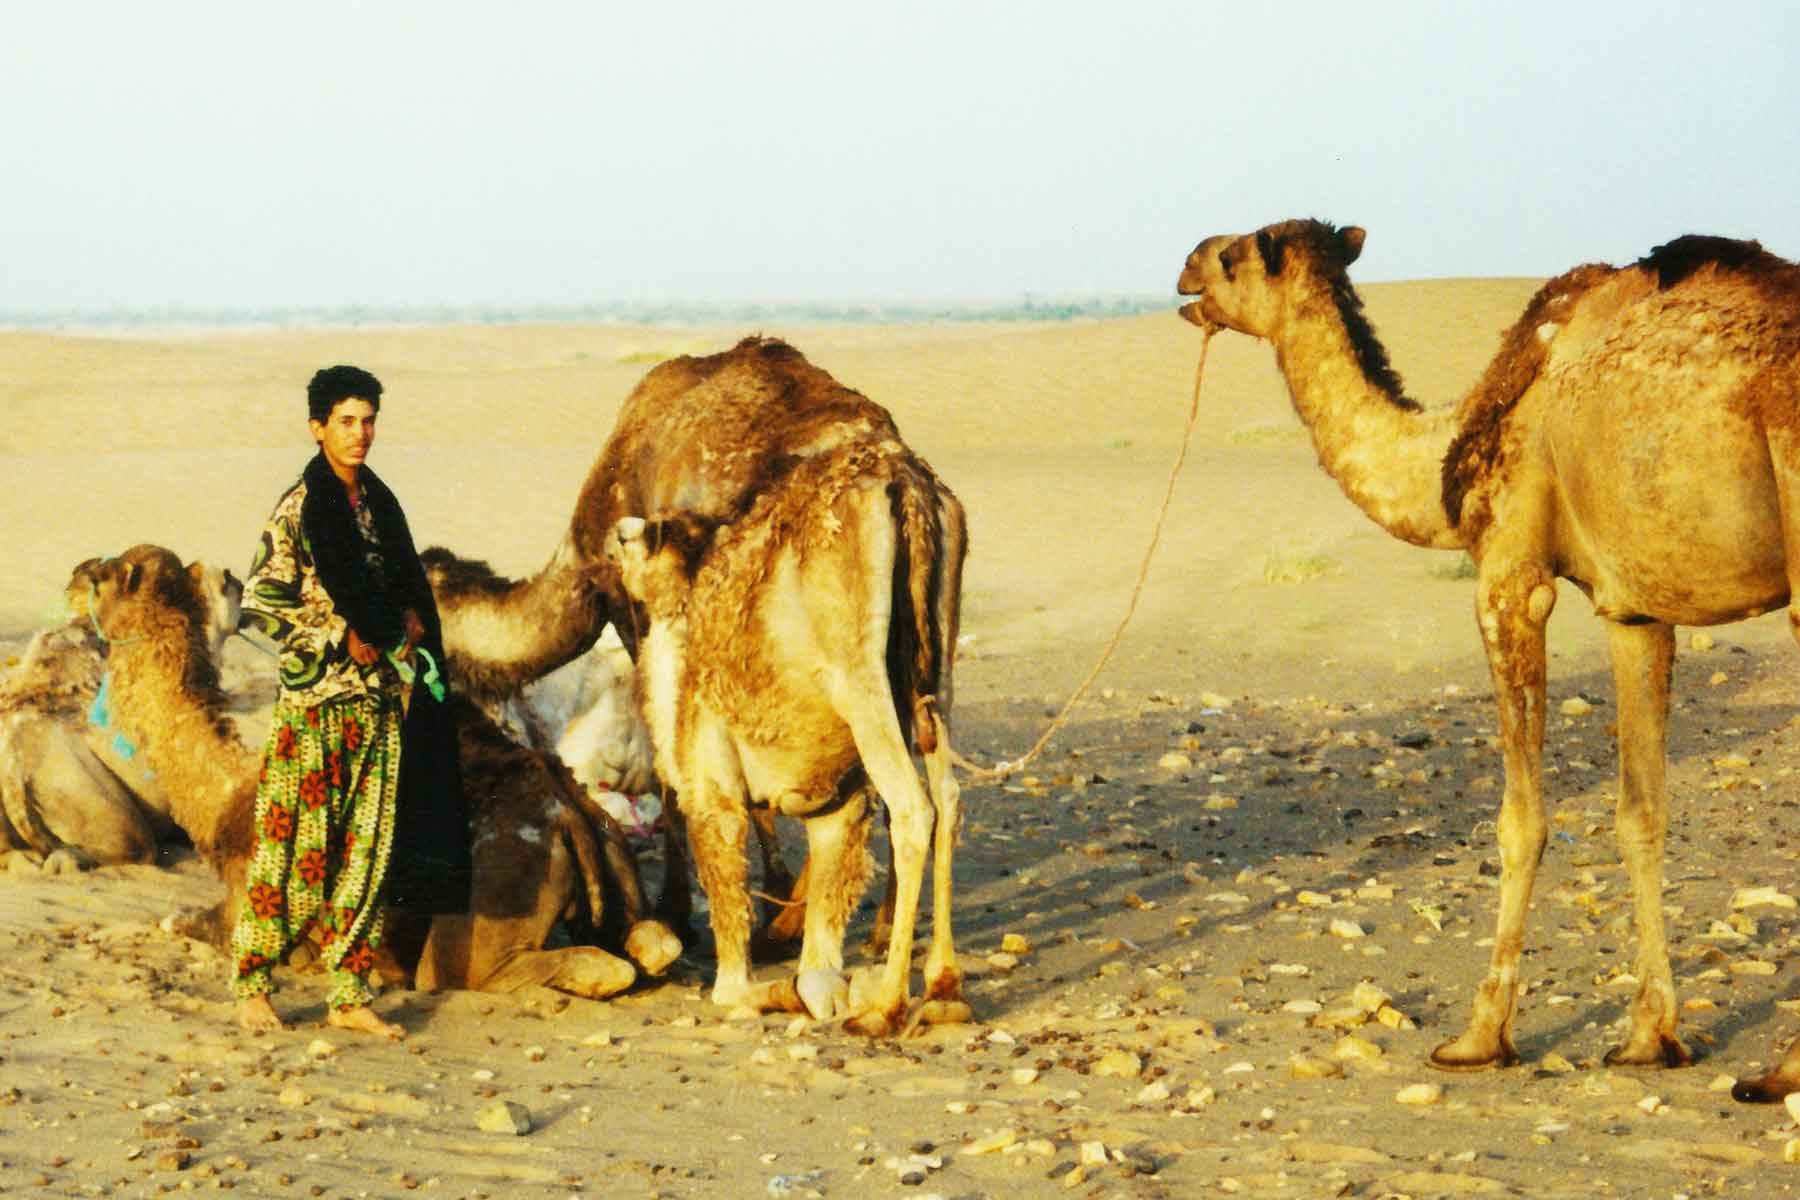 Camels - Sahara Desert - Morocco - Study Abroad - Steven Andrew Martin - Spain Photo Journal